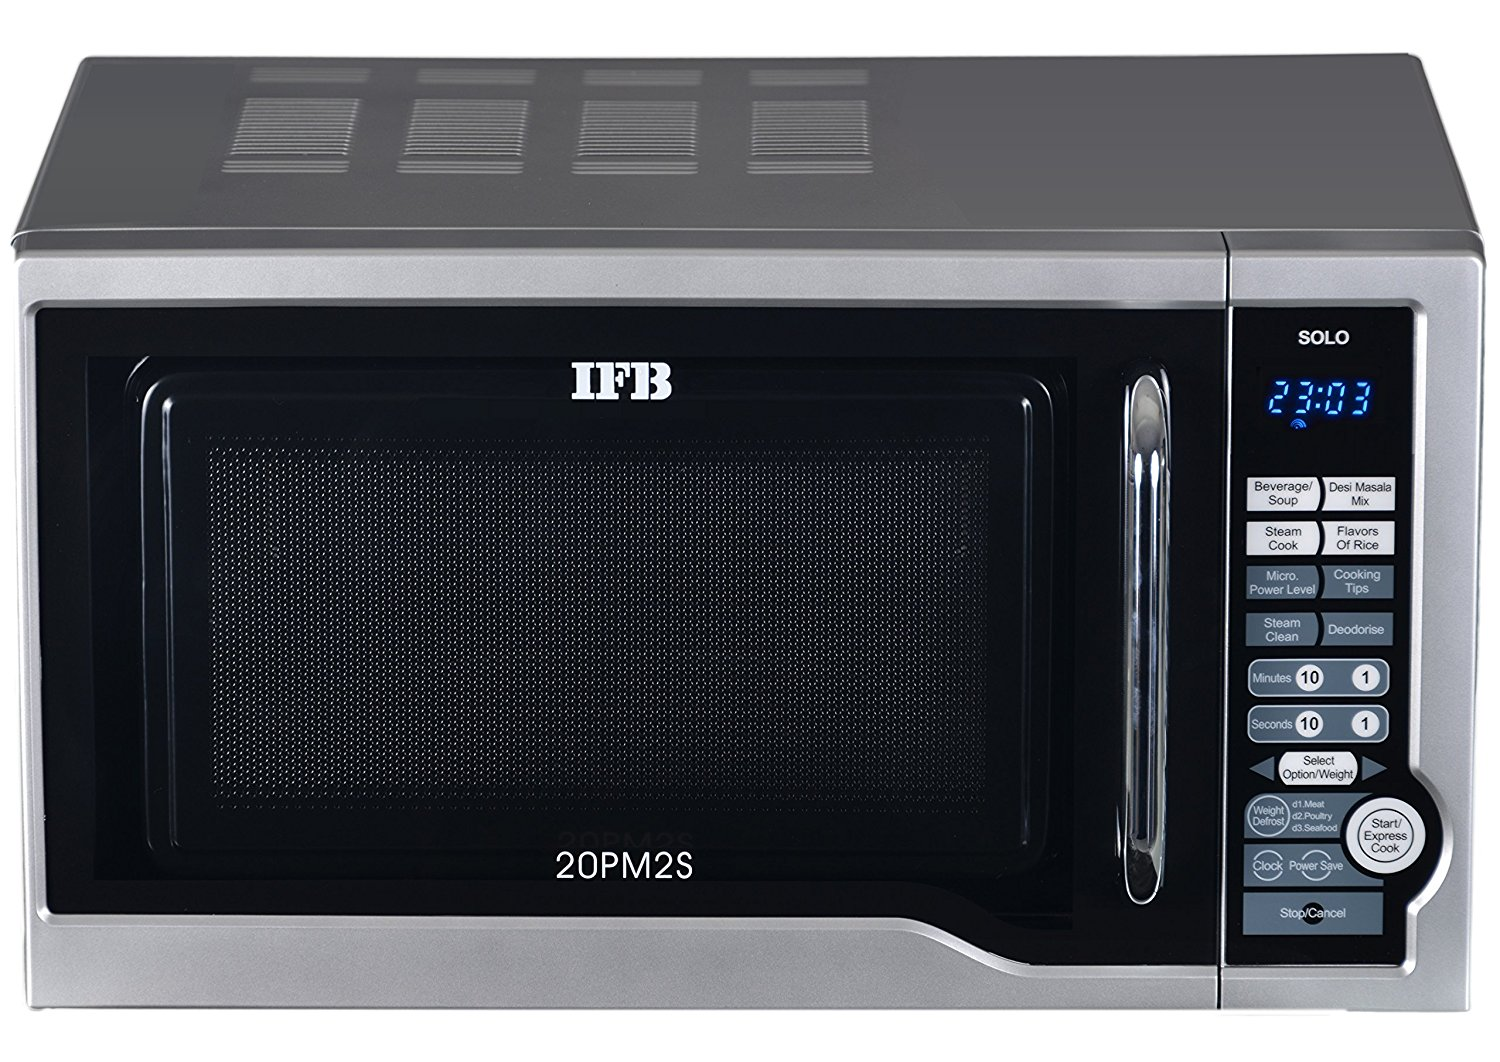 Ifb Solo 20pm2s 20 Liters 800 Watts Microwave Oven Silver